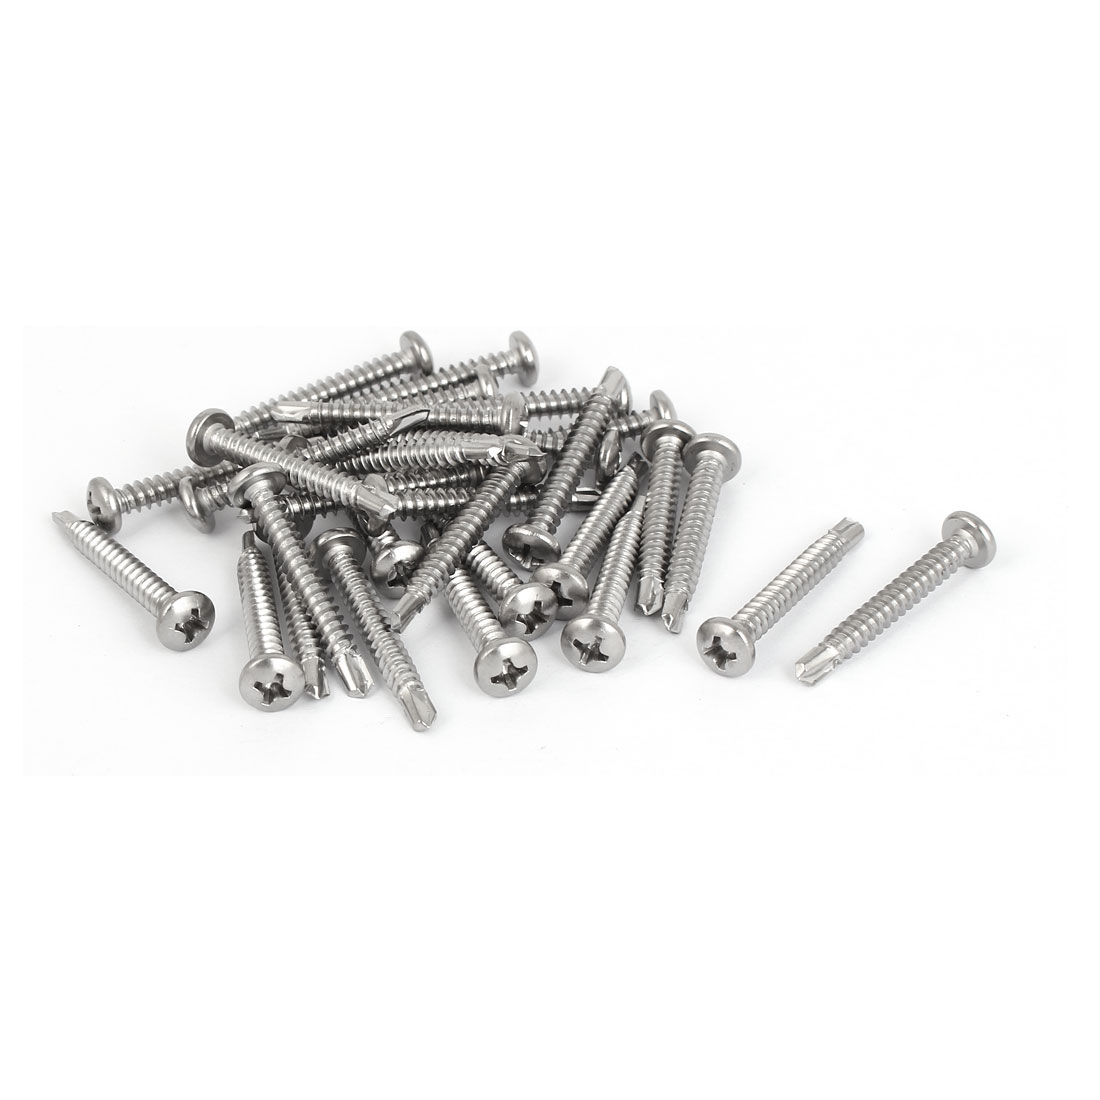 M4.2 x 32mm Male Thread 410 Stainless Steel Self Drilling Screws 30 Pcs